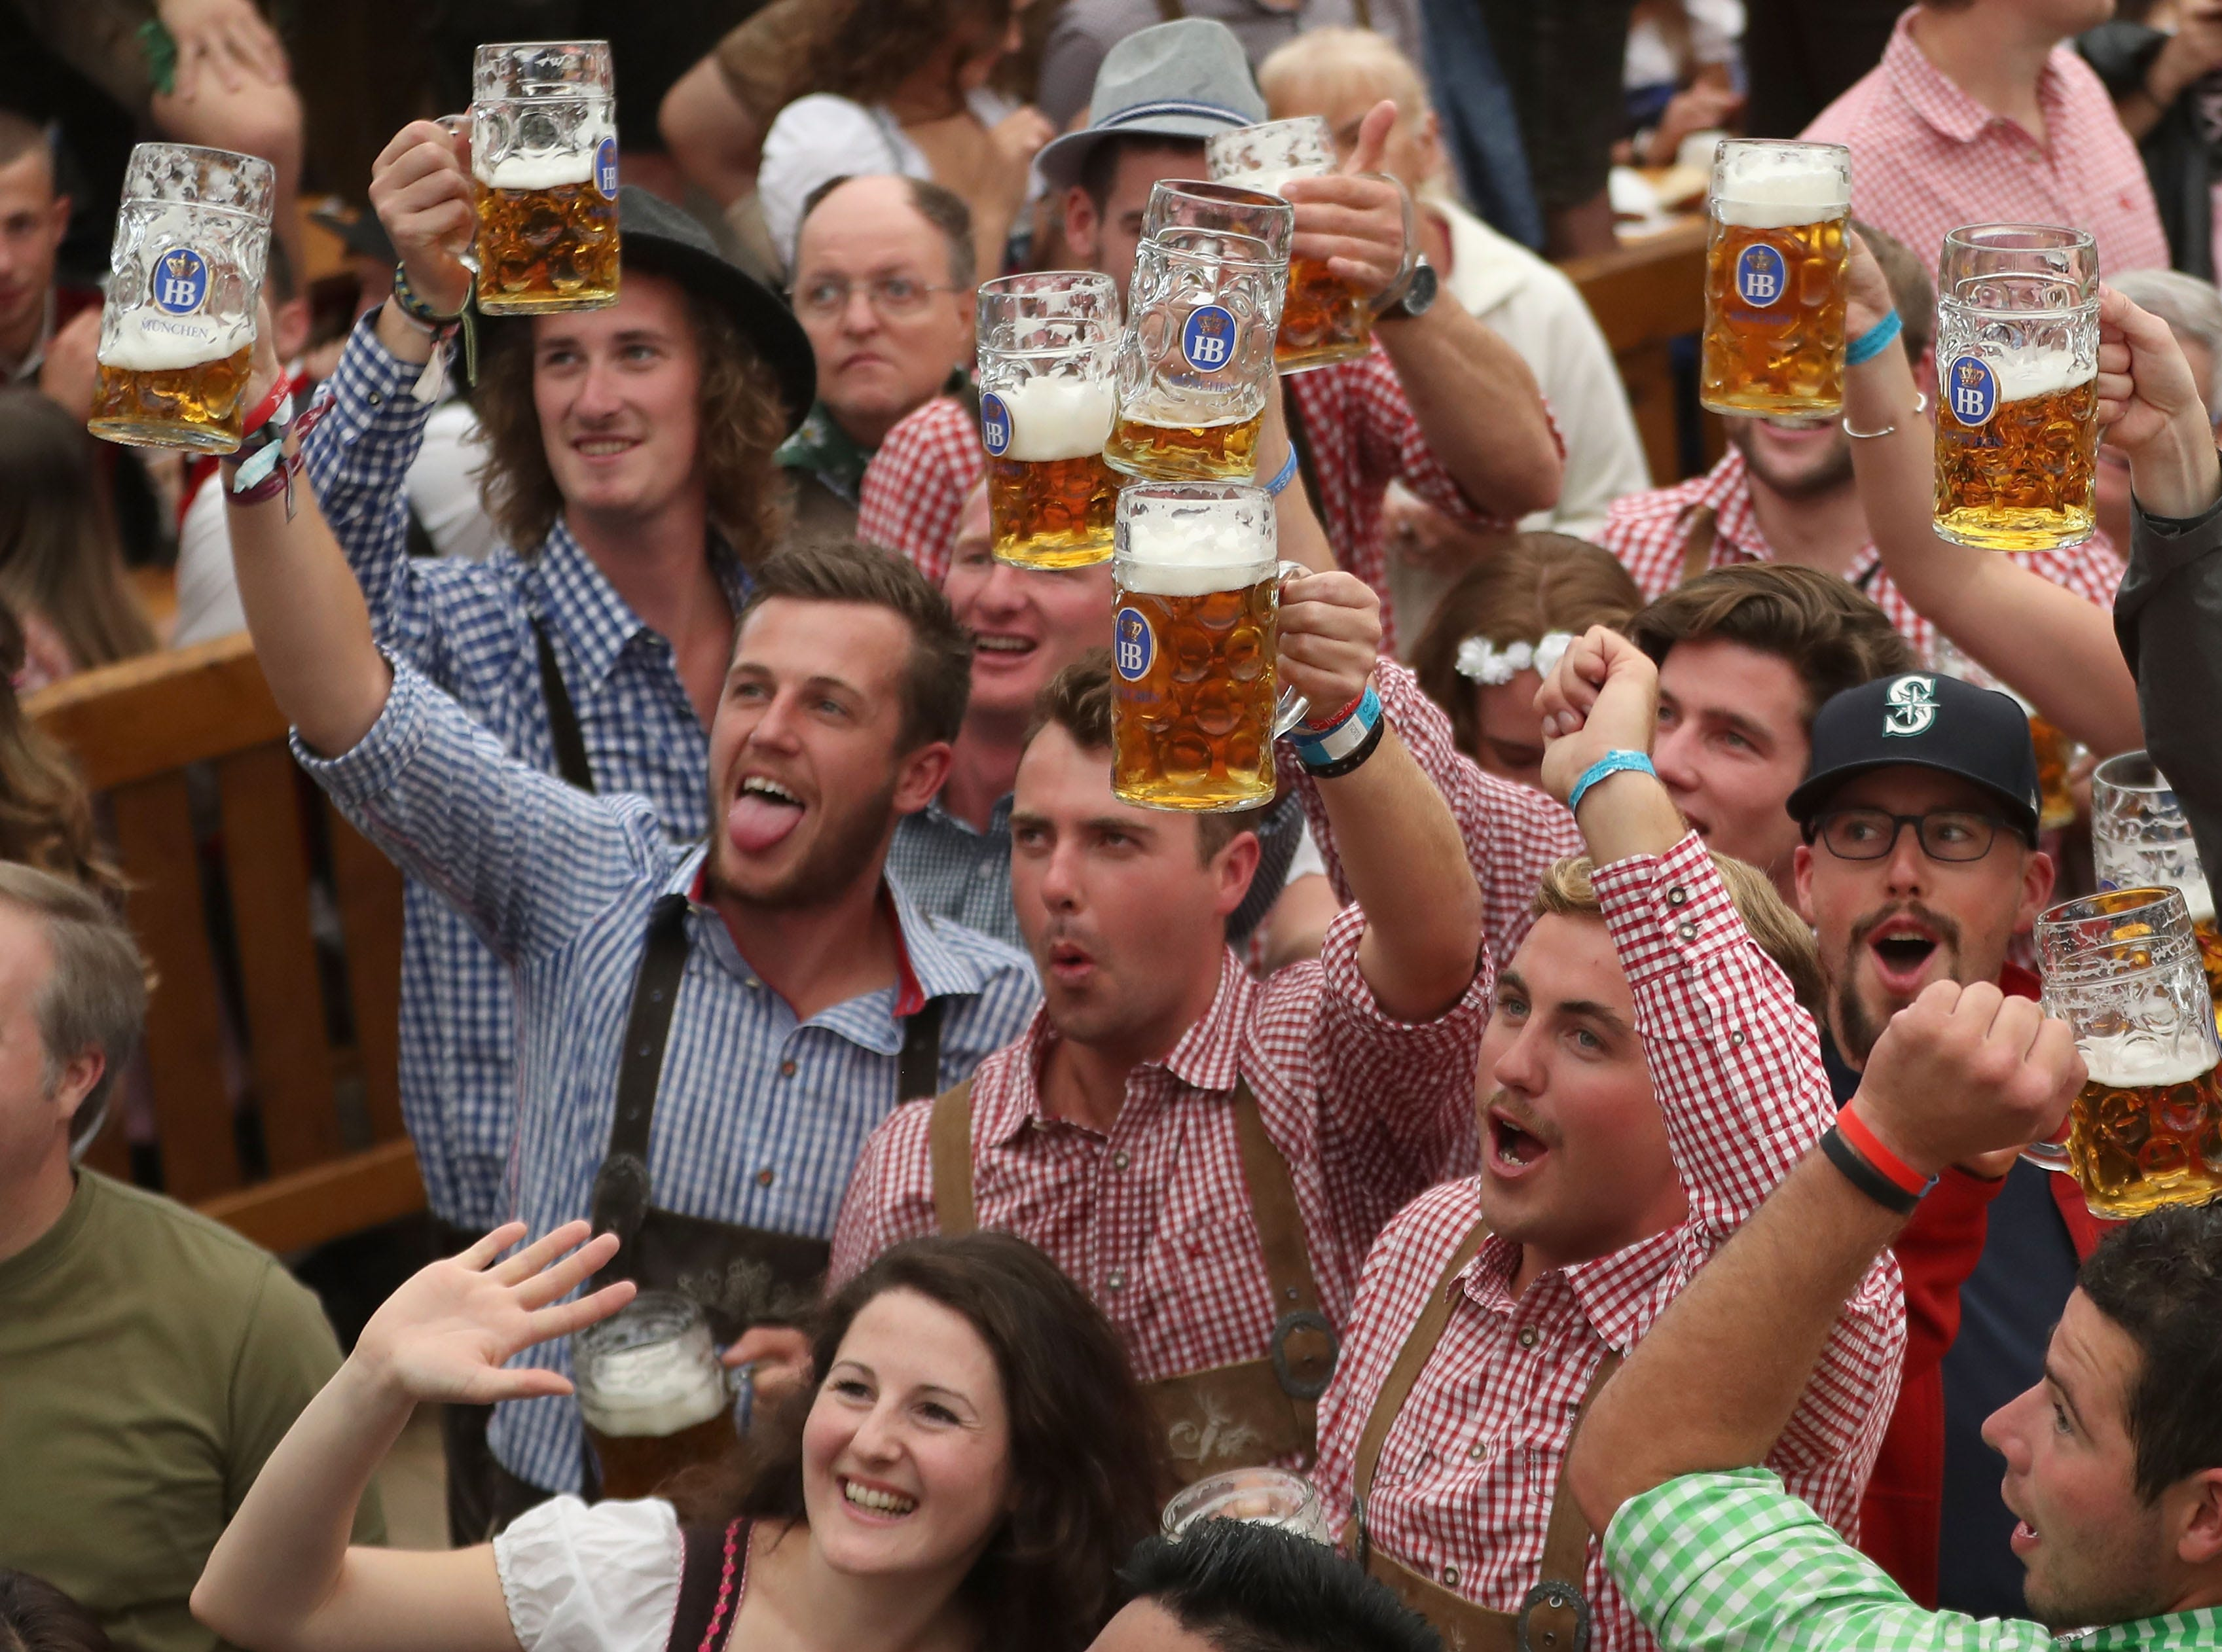 The Oktoberfest lasts until October 7 and is the world's largest beer festival.